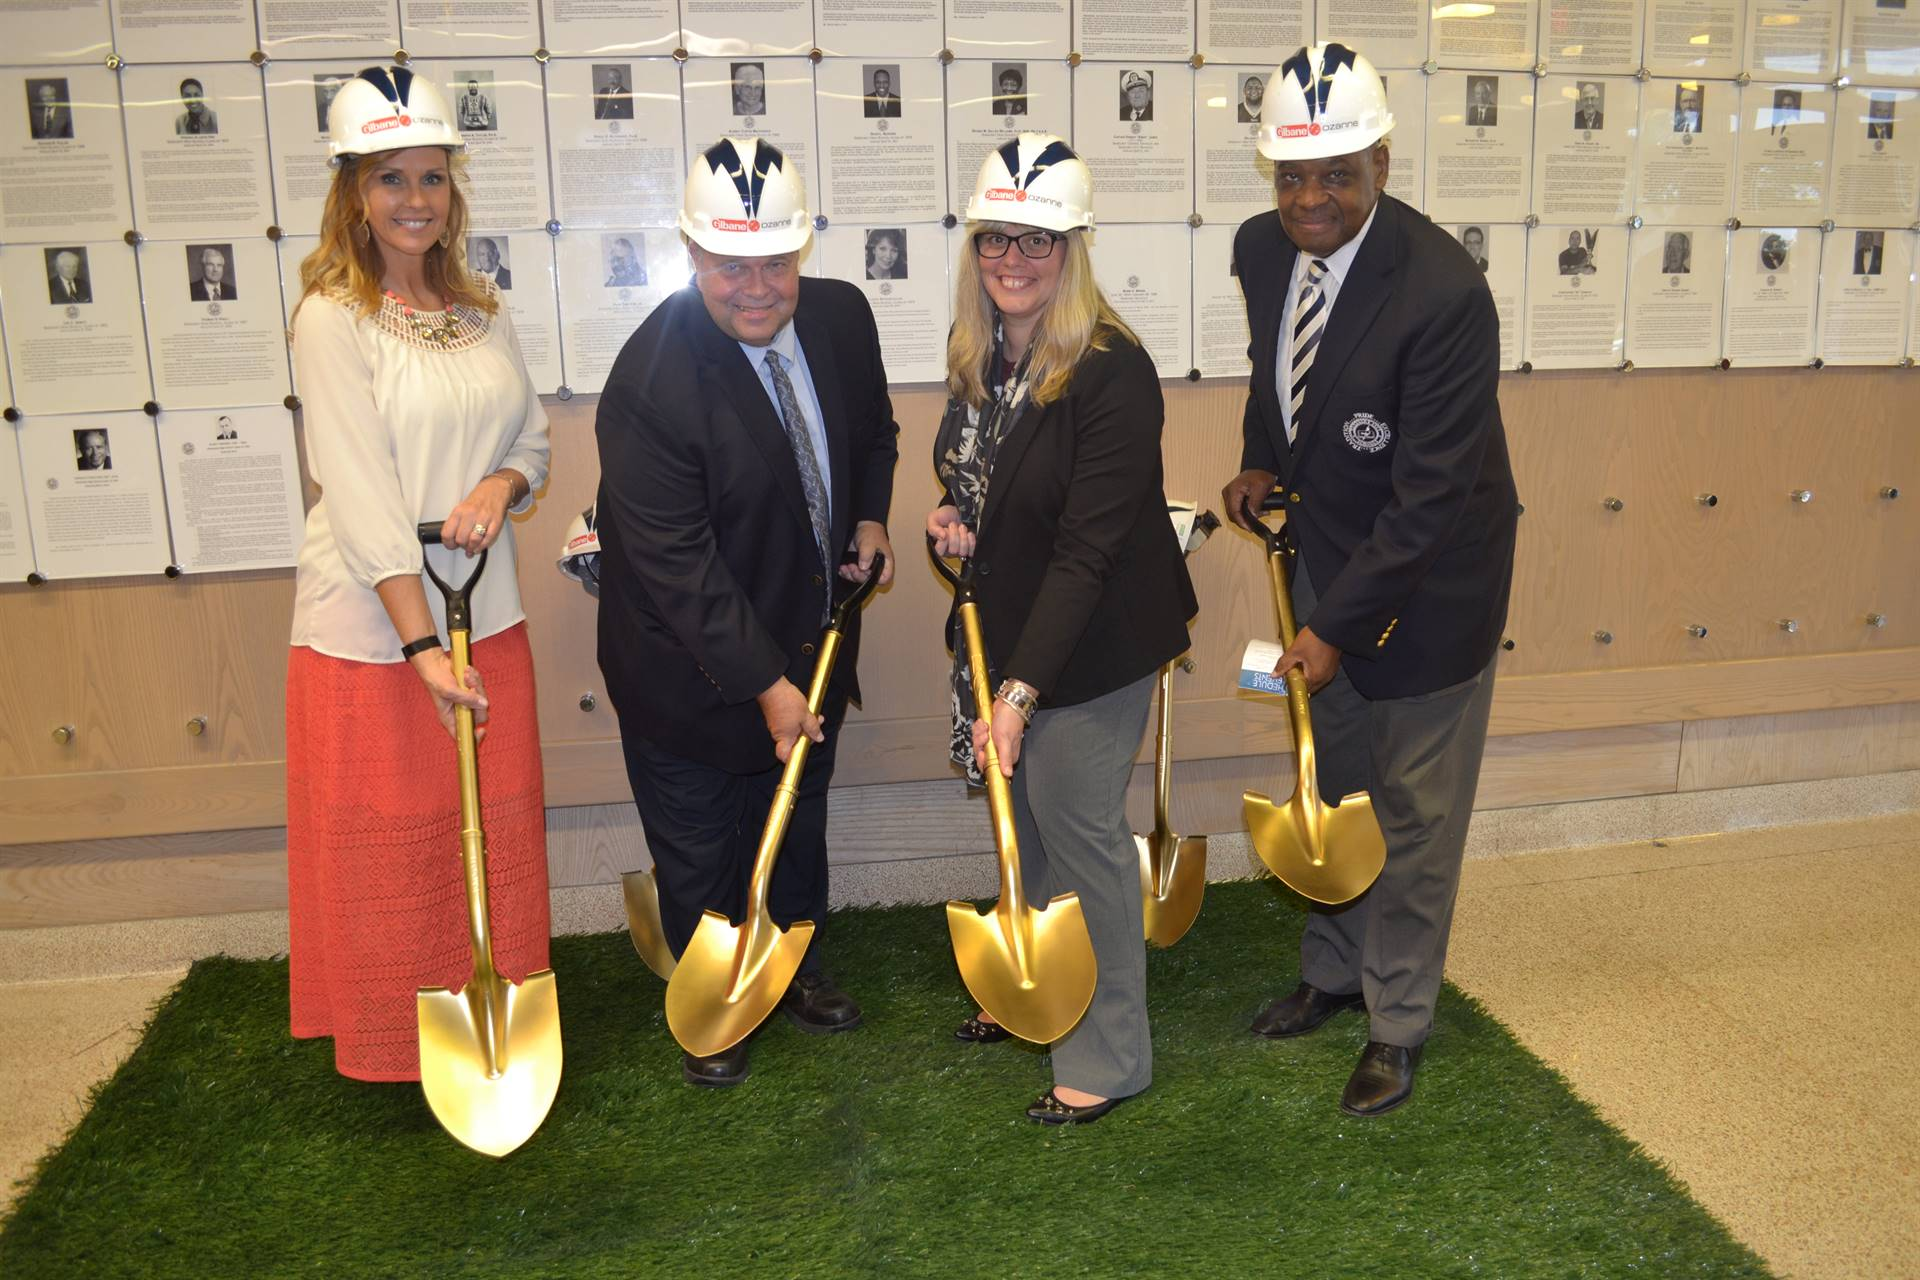 Senior Leadership Team at the Groundbreaking Ceremony